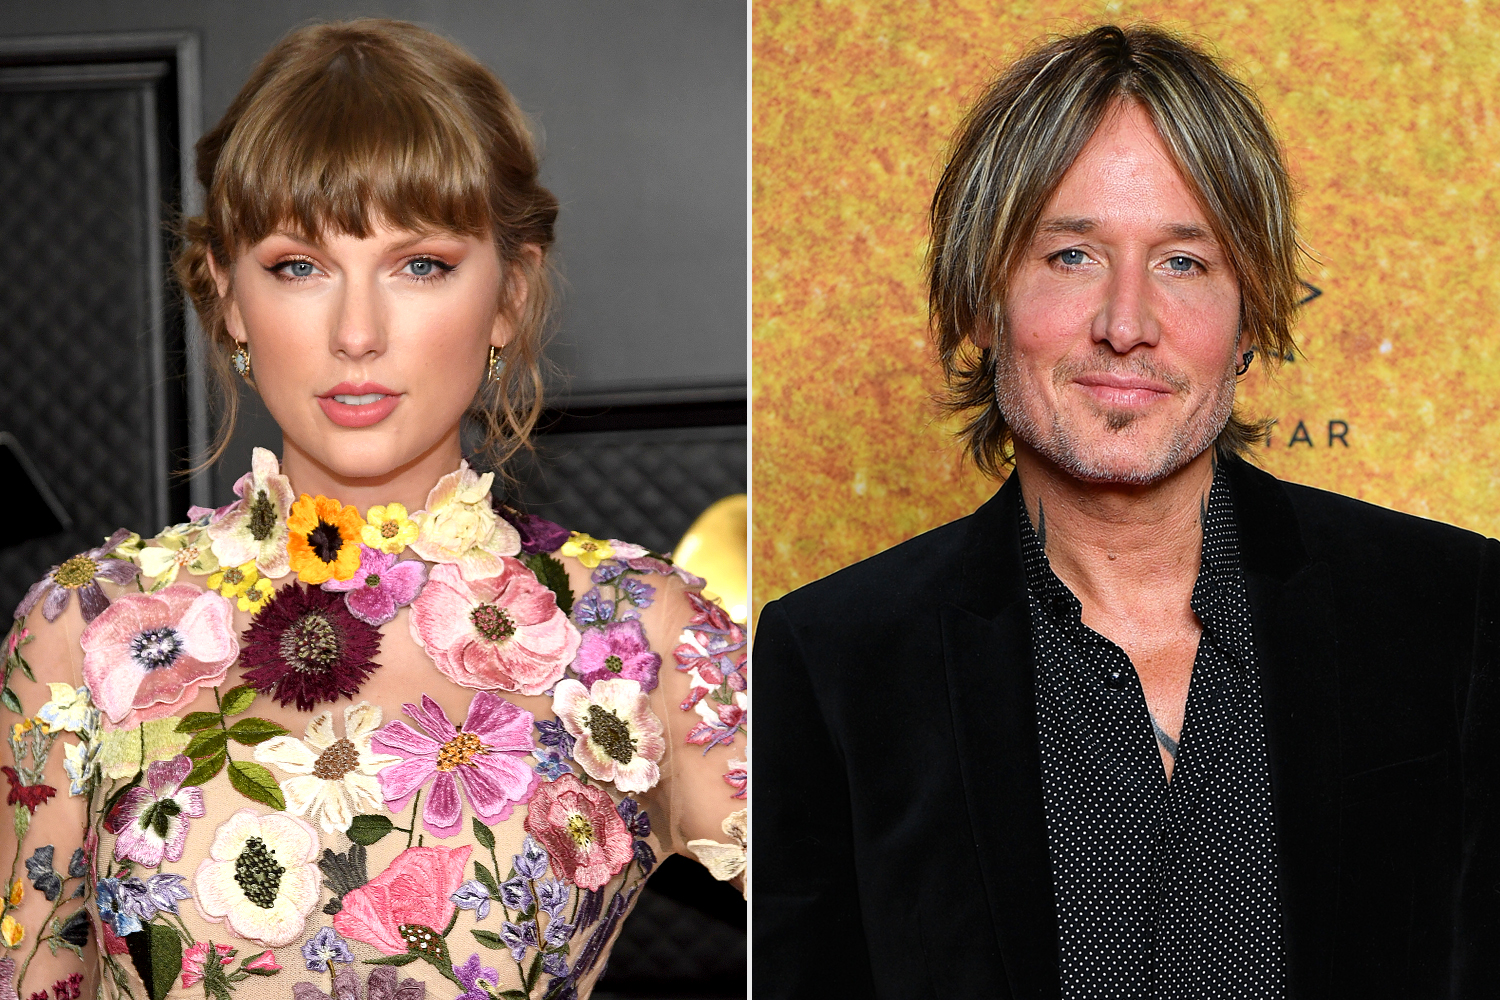 Taylor Swift와 Keith Urban Collab on 2 Fearless (Taylor 's Version) Songs — See the Full Tracklist